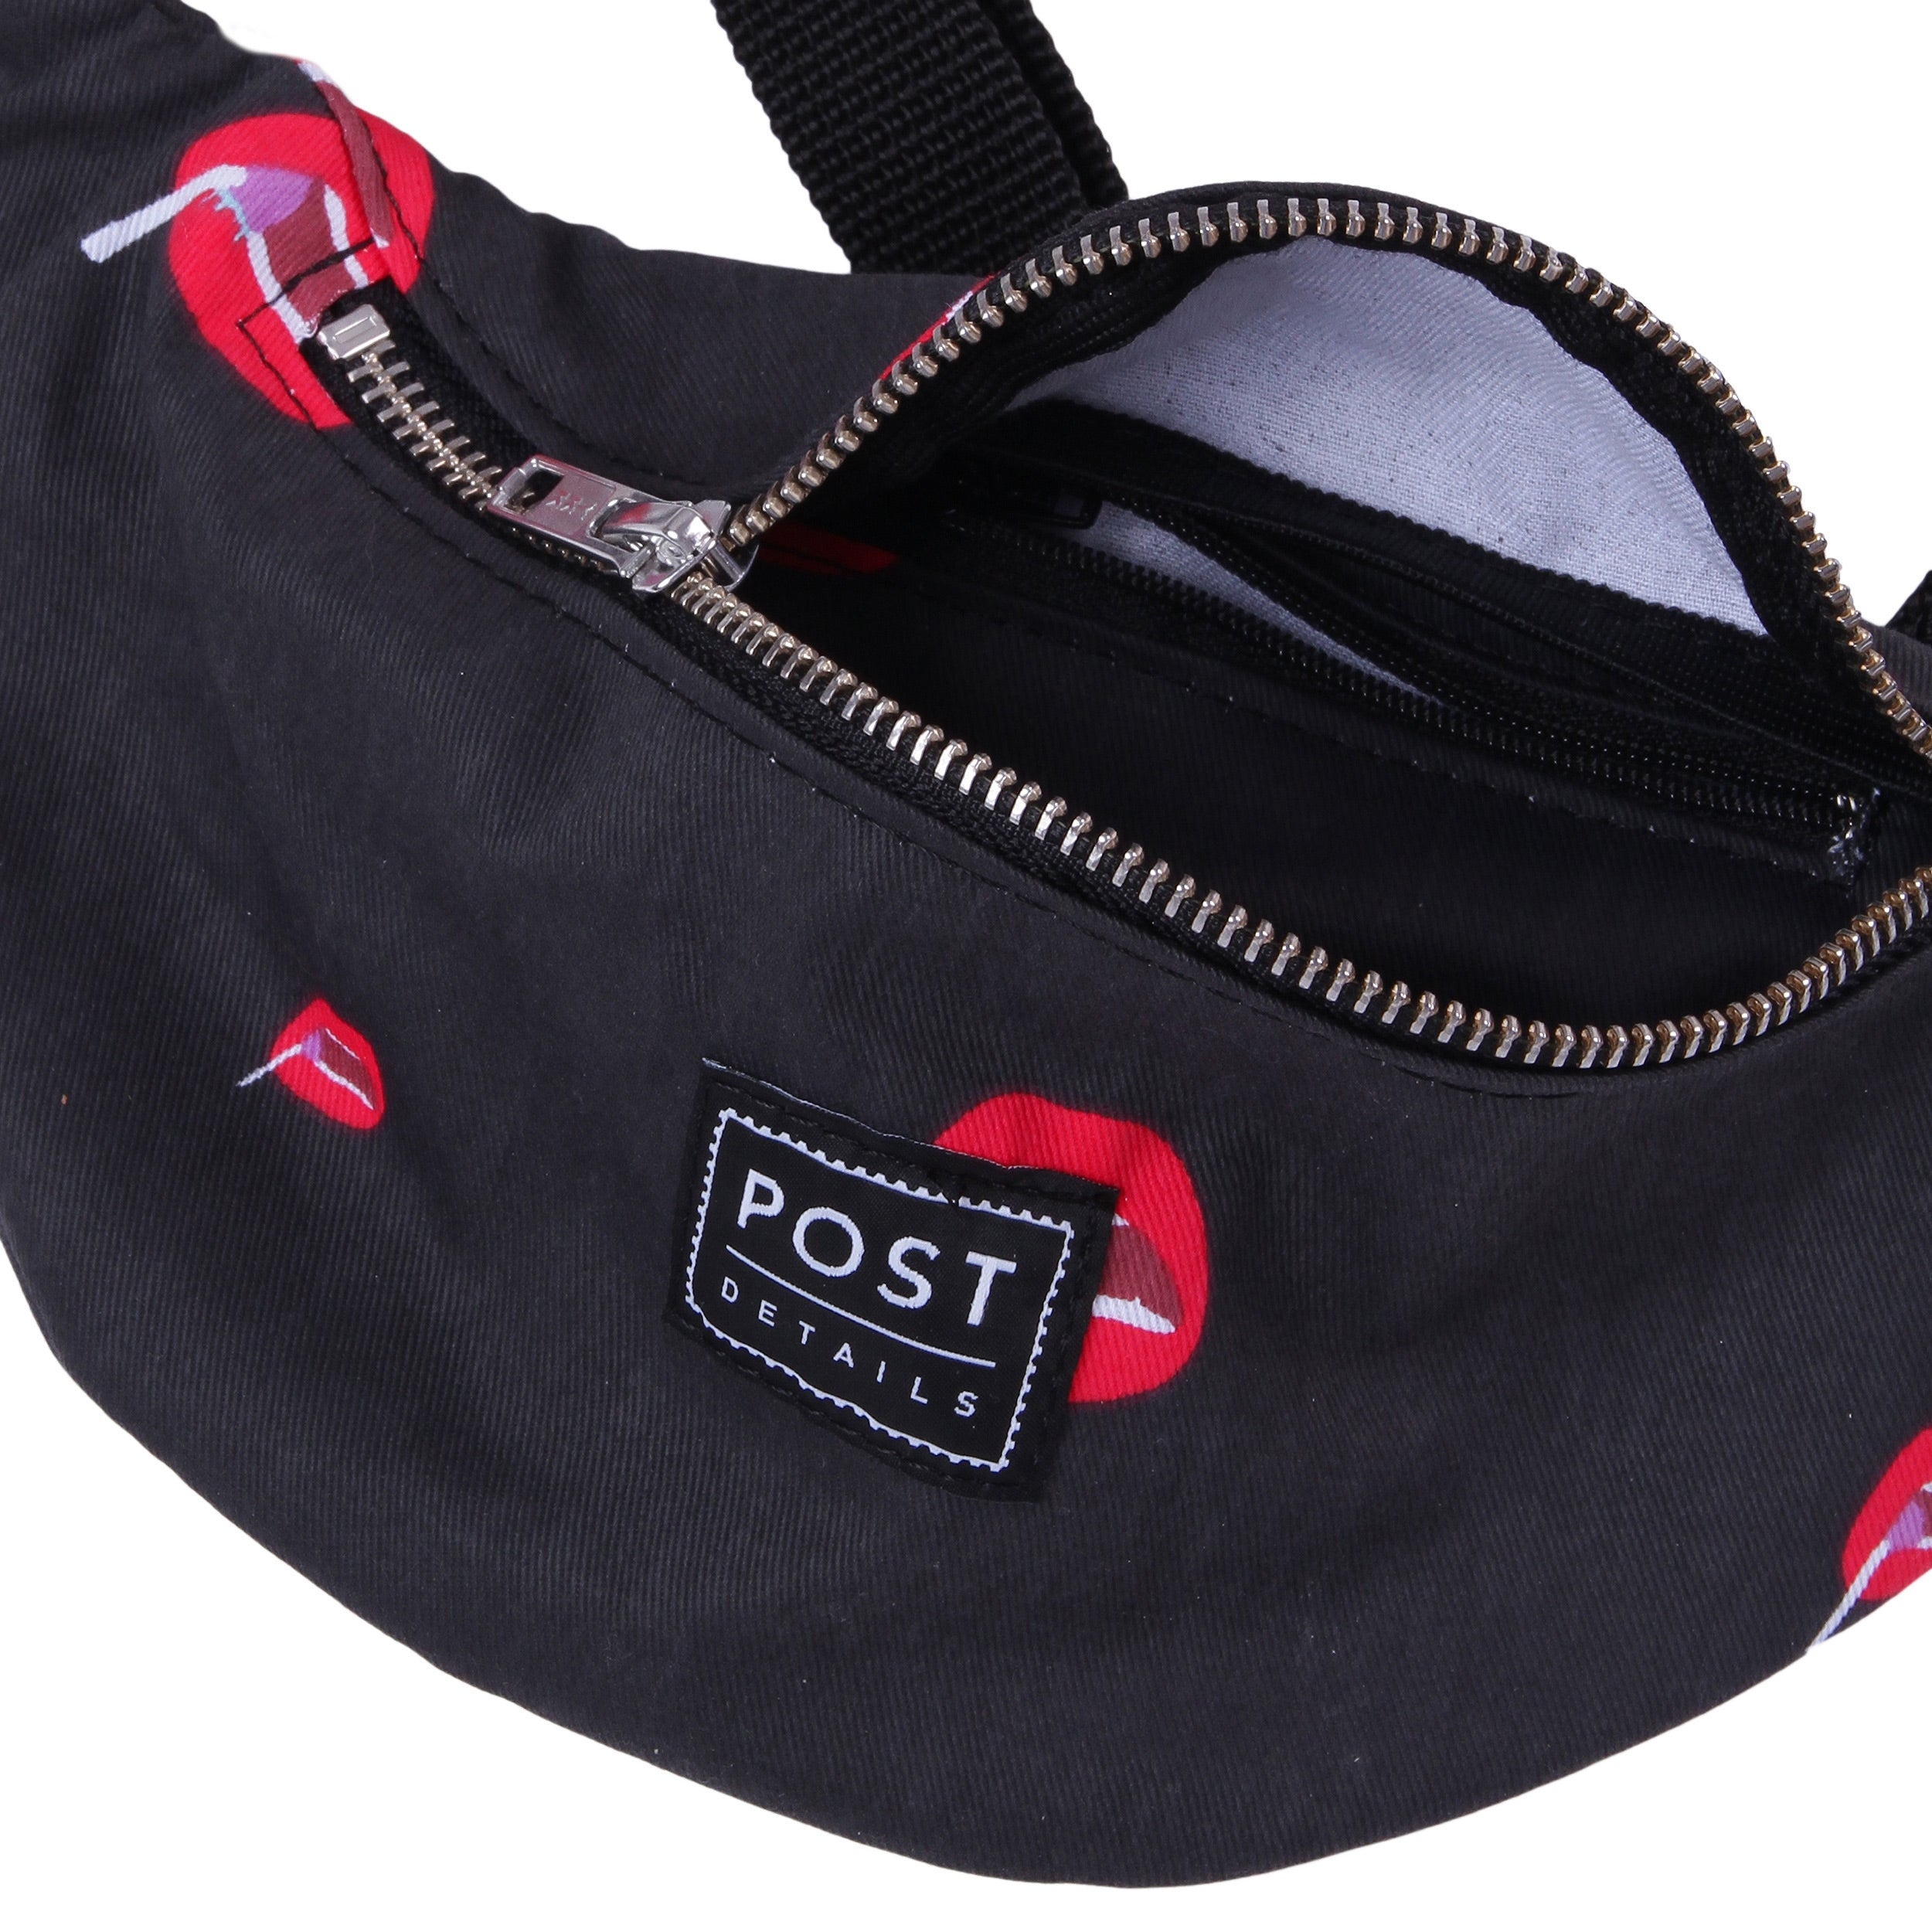 Post Kitsch Hip Bag Black